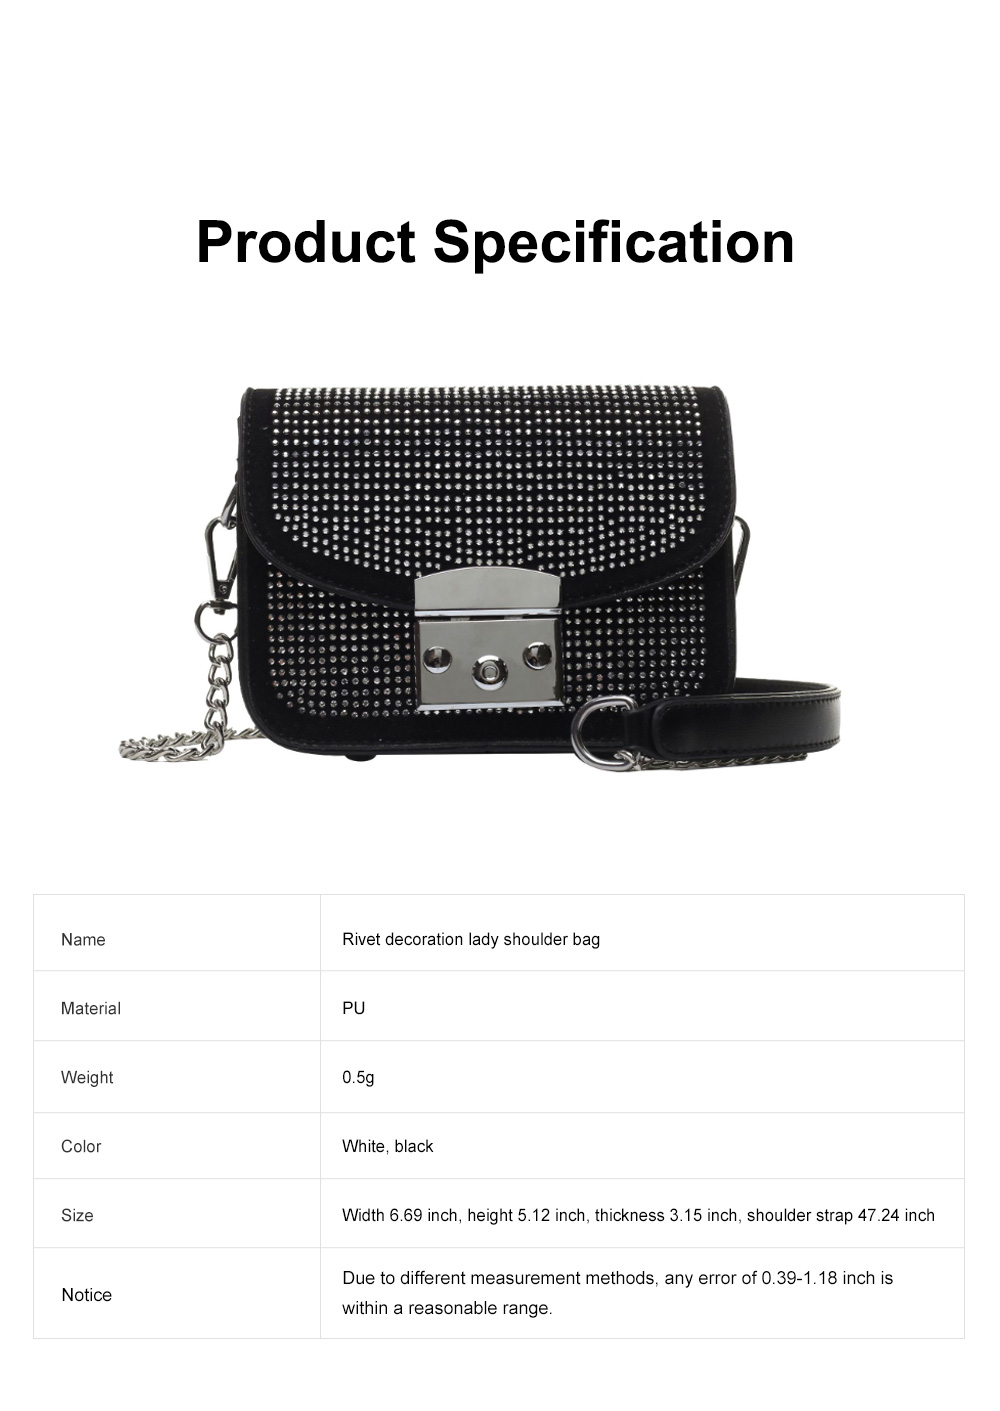 Fashion Fancy Shiny Lady Shoulder Bag with Rivet Decoration, Ultra-smooth PU Leather Chain Bag for Women 6